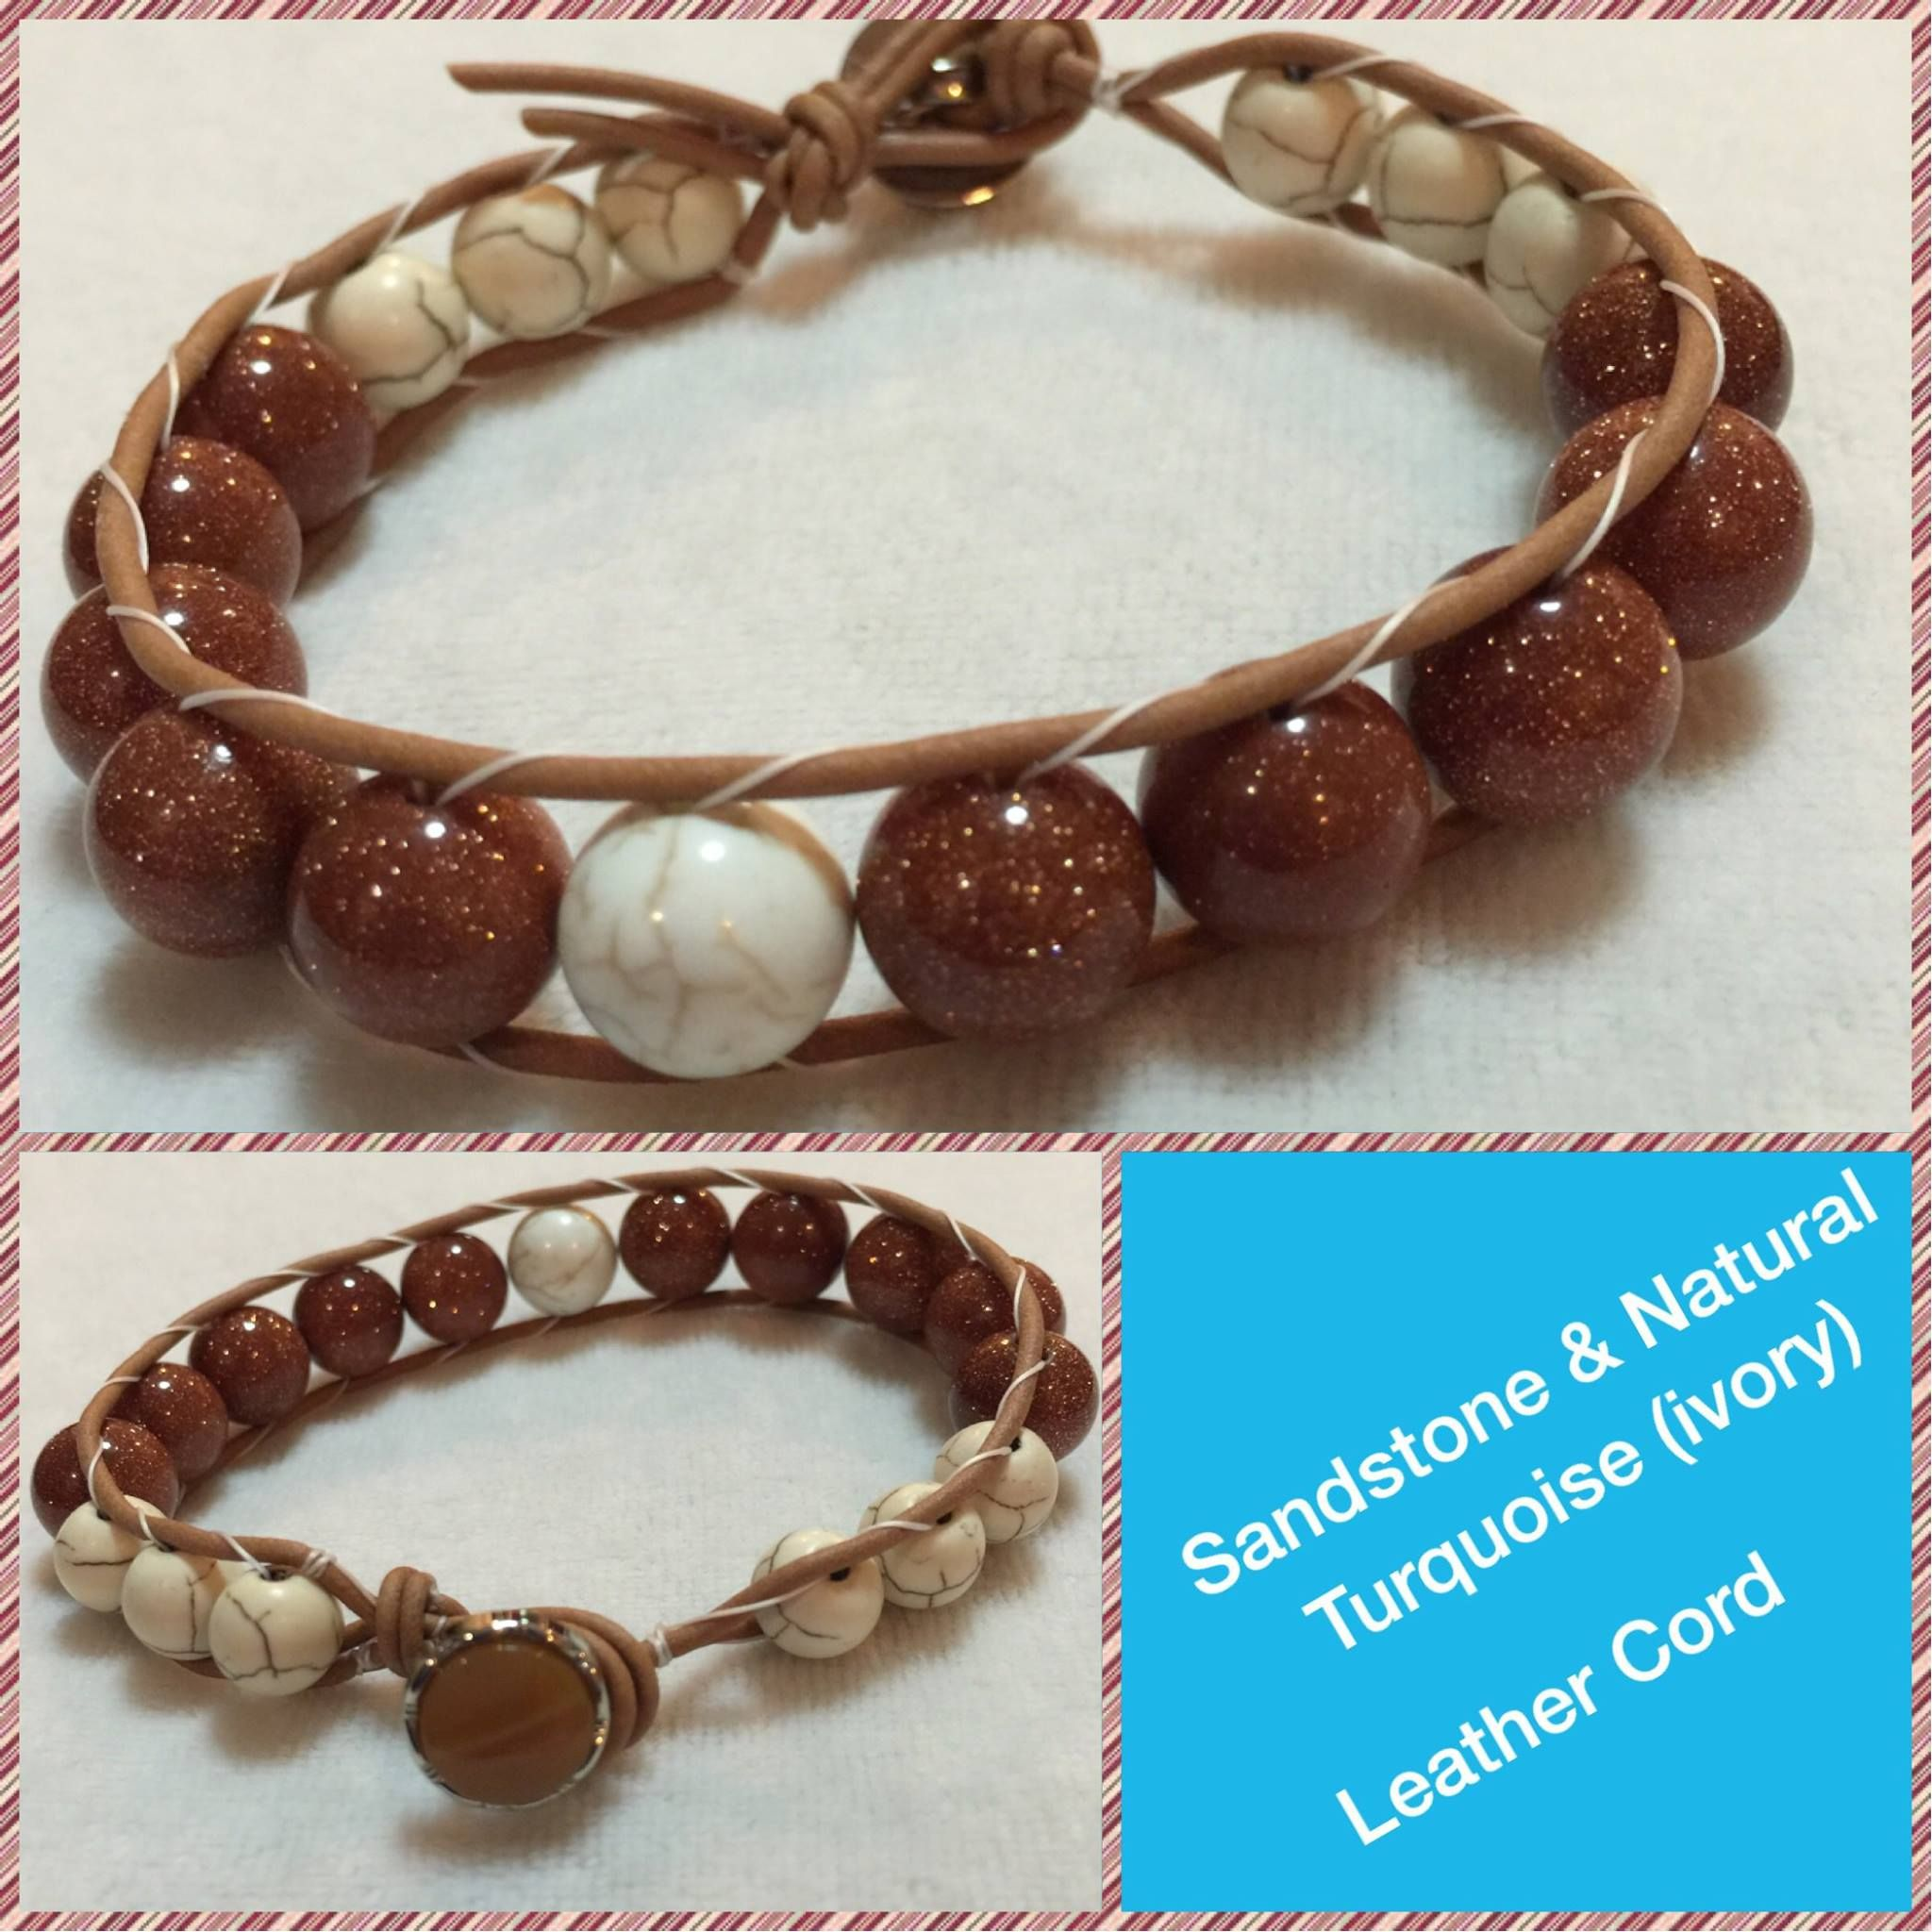 Boho Chic Leather-wrapped bracelet - Natural Ivory Turquoise and Synthetic sand stone